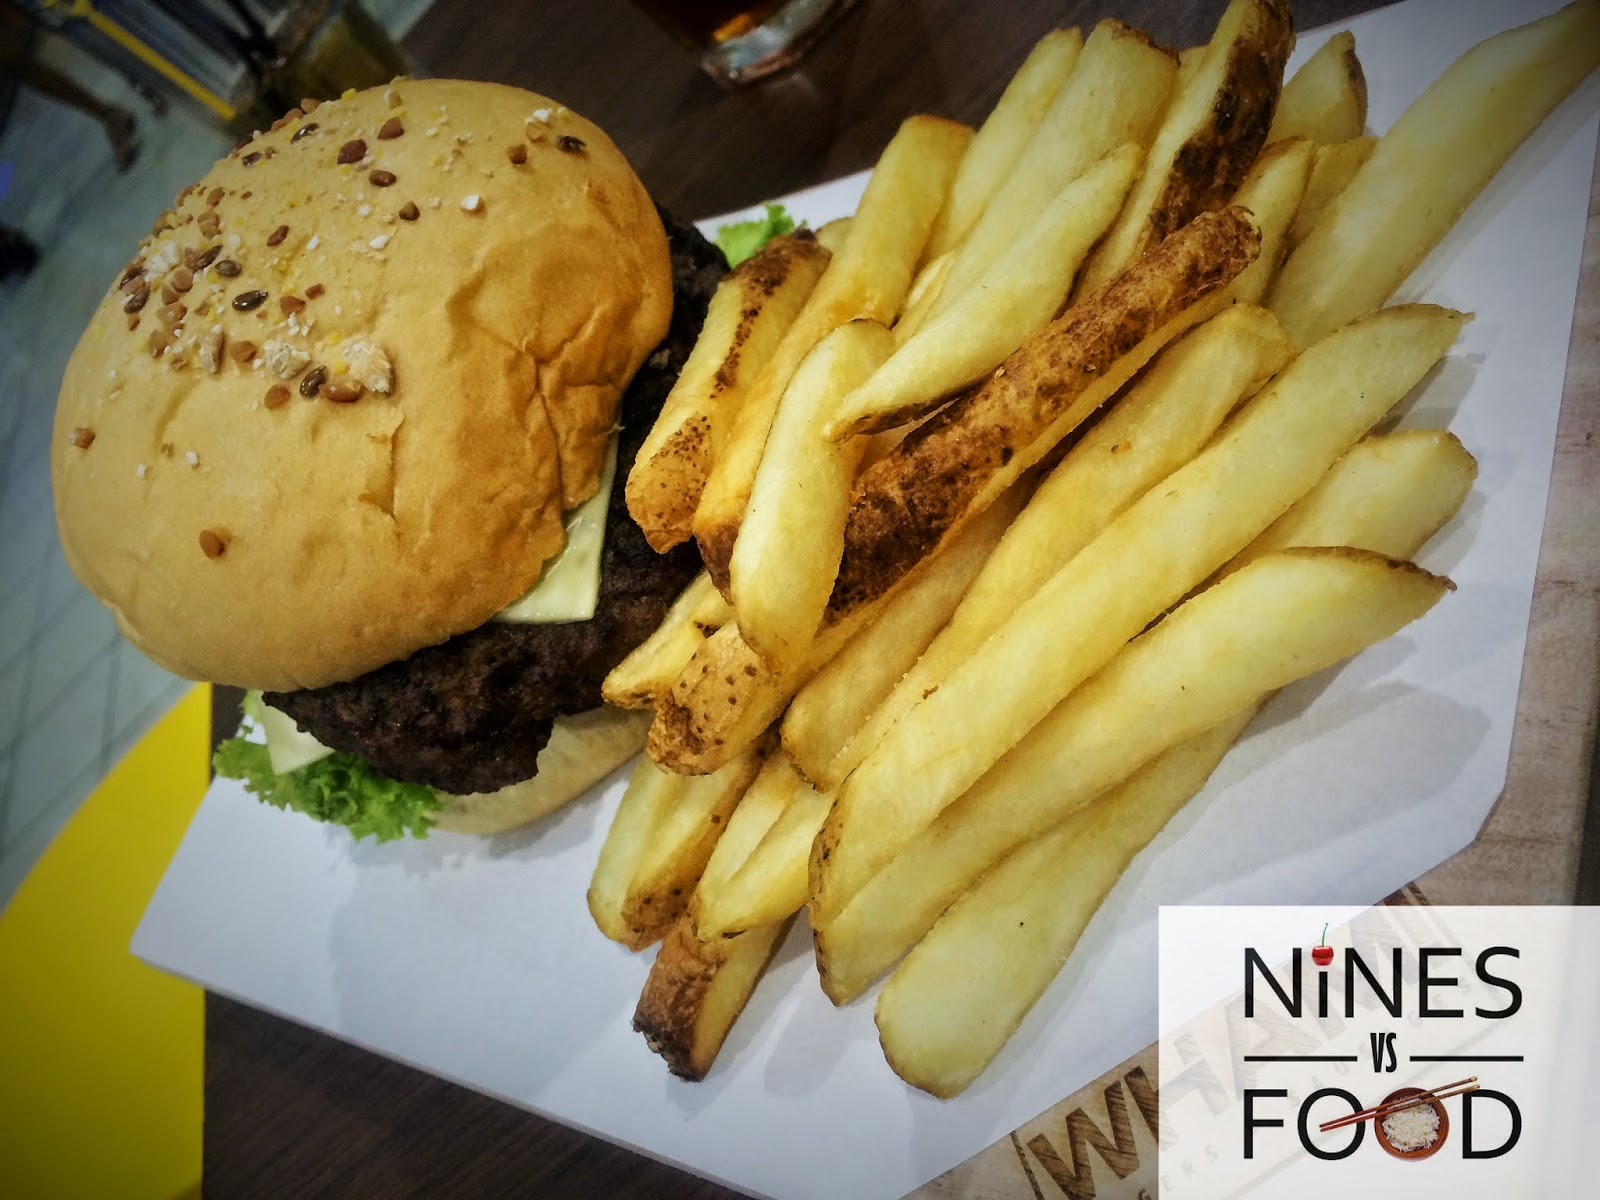 Nines vs Food - Wham! Burgers and Sausages-10.jpg